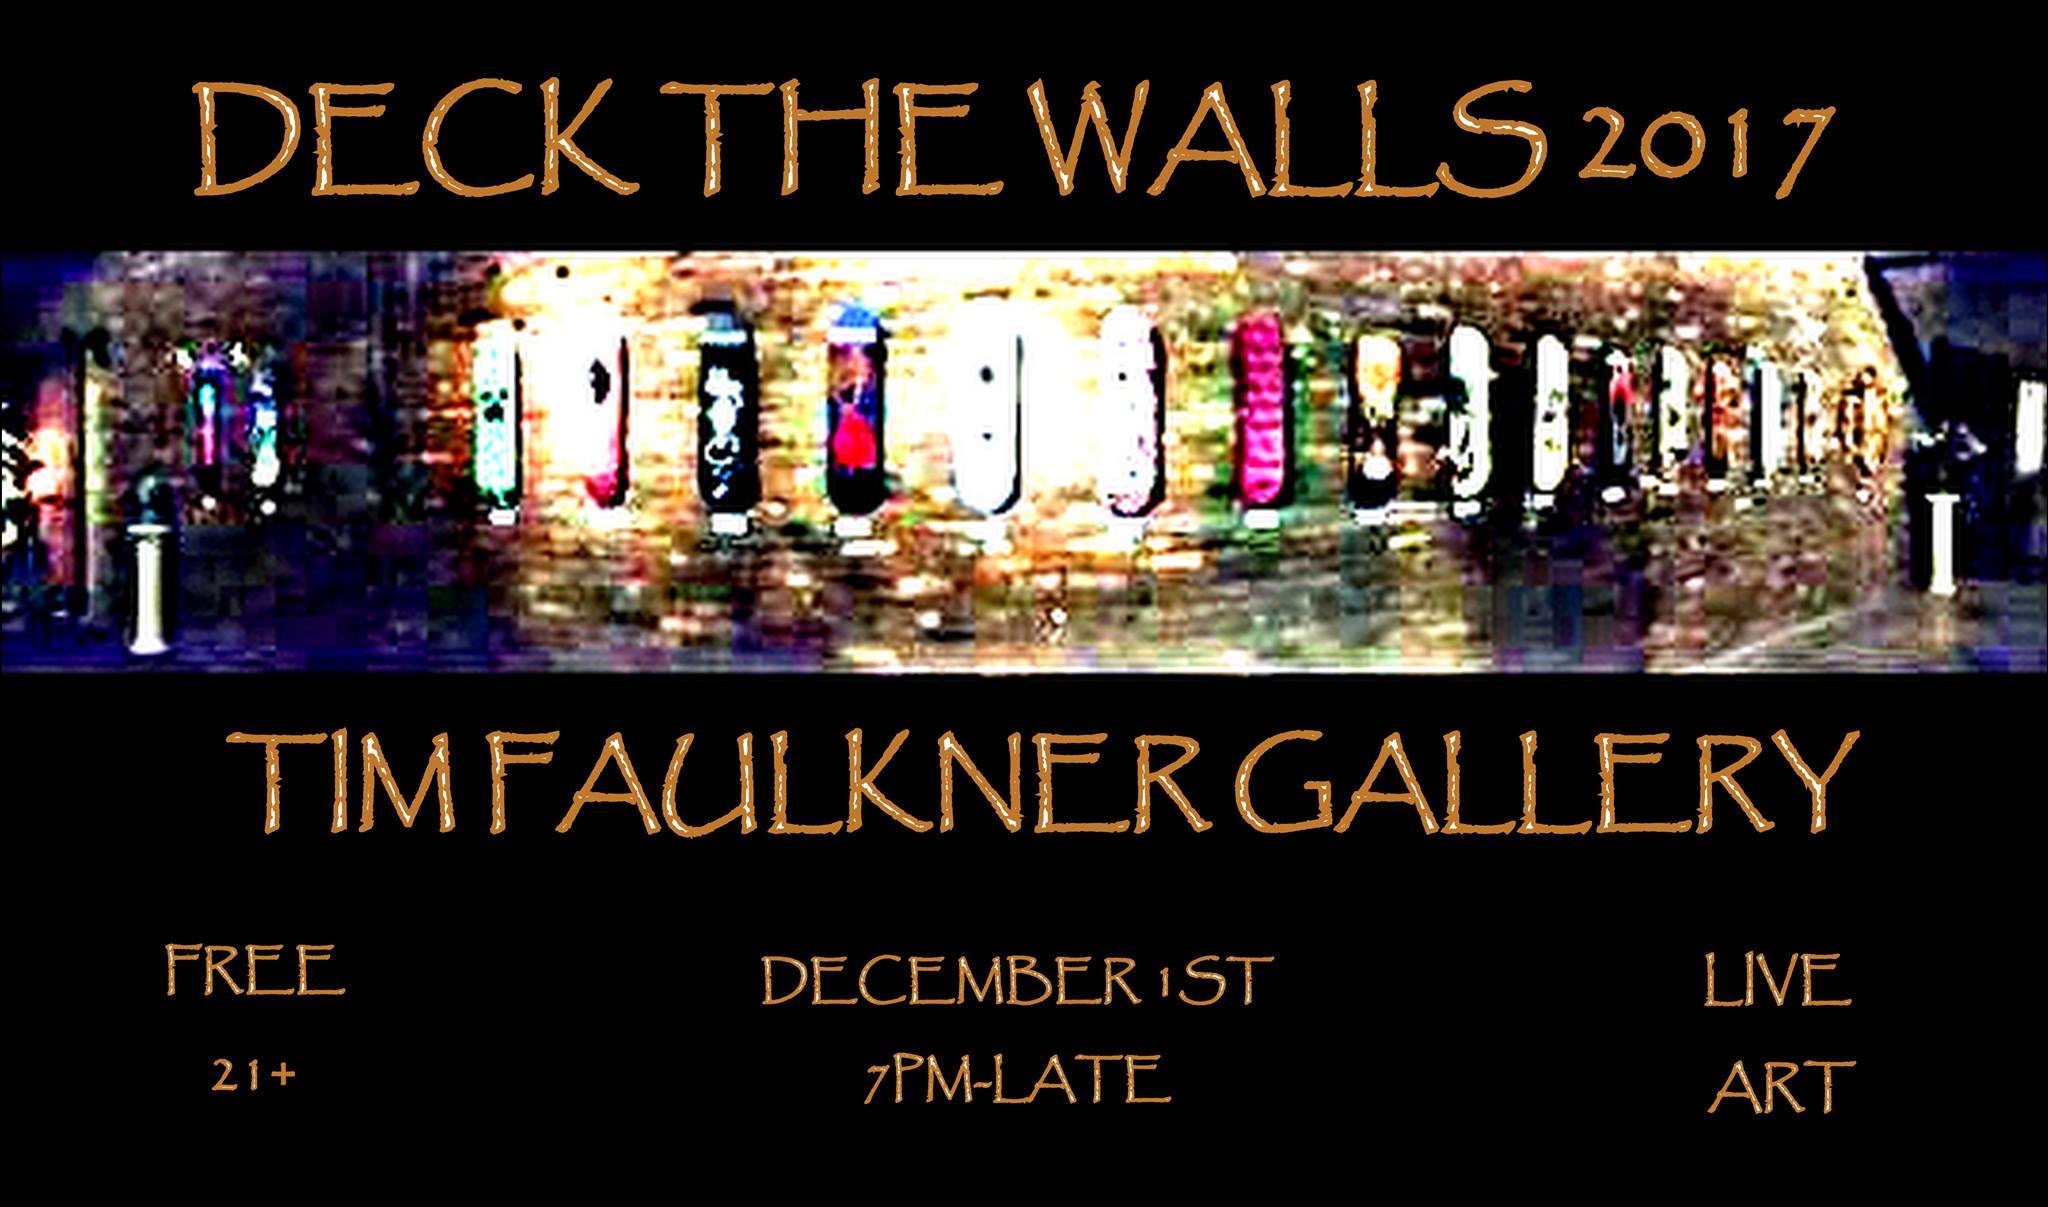 """FRIDAY:  It's time to """" Deck the Walls """" again at the Tim Faulkner Gallery Because it's a """" Winter Wonderland! """" at Reverly Boutique Gallery """" Don't Krampus My Style """" this holiday season at Block Party downtown Craft offers """" Atmospheric Energy """" by Justin Rothshank Moremen Moloney highlights """" The Elegant Form """" Art Sanctuary shows a """" Studio Artists Exhibition""""    SATURDAY:  The Flea Off Market moves indoors to Art Sanctuary for the """" Holiday Bazaar """" """" Come Home """" with Angie Reed Garner to Consider Boutique   ALL WEEKEND:  """" The Square""""  screens at the Speed   TUESDAY:  Art Sanctuary hosts even more """" Holiday Art!"""""""